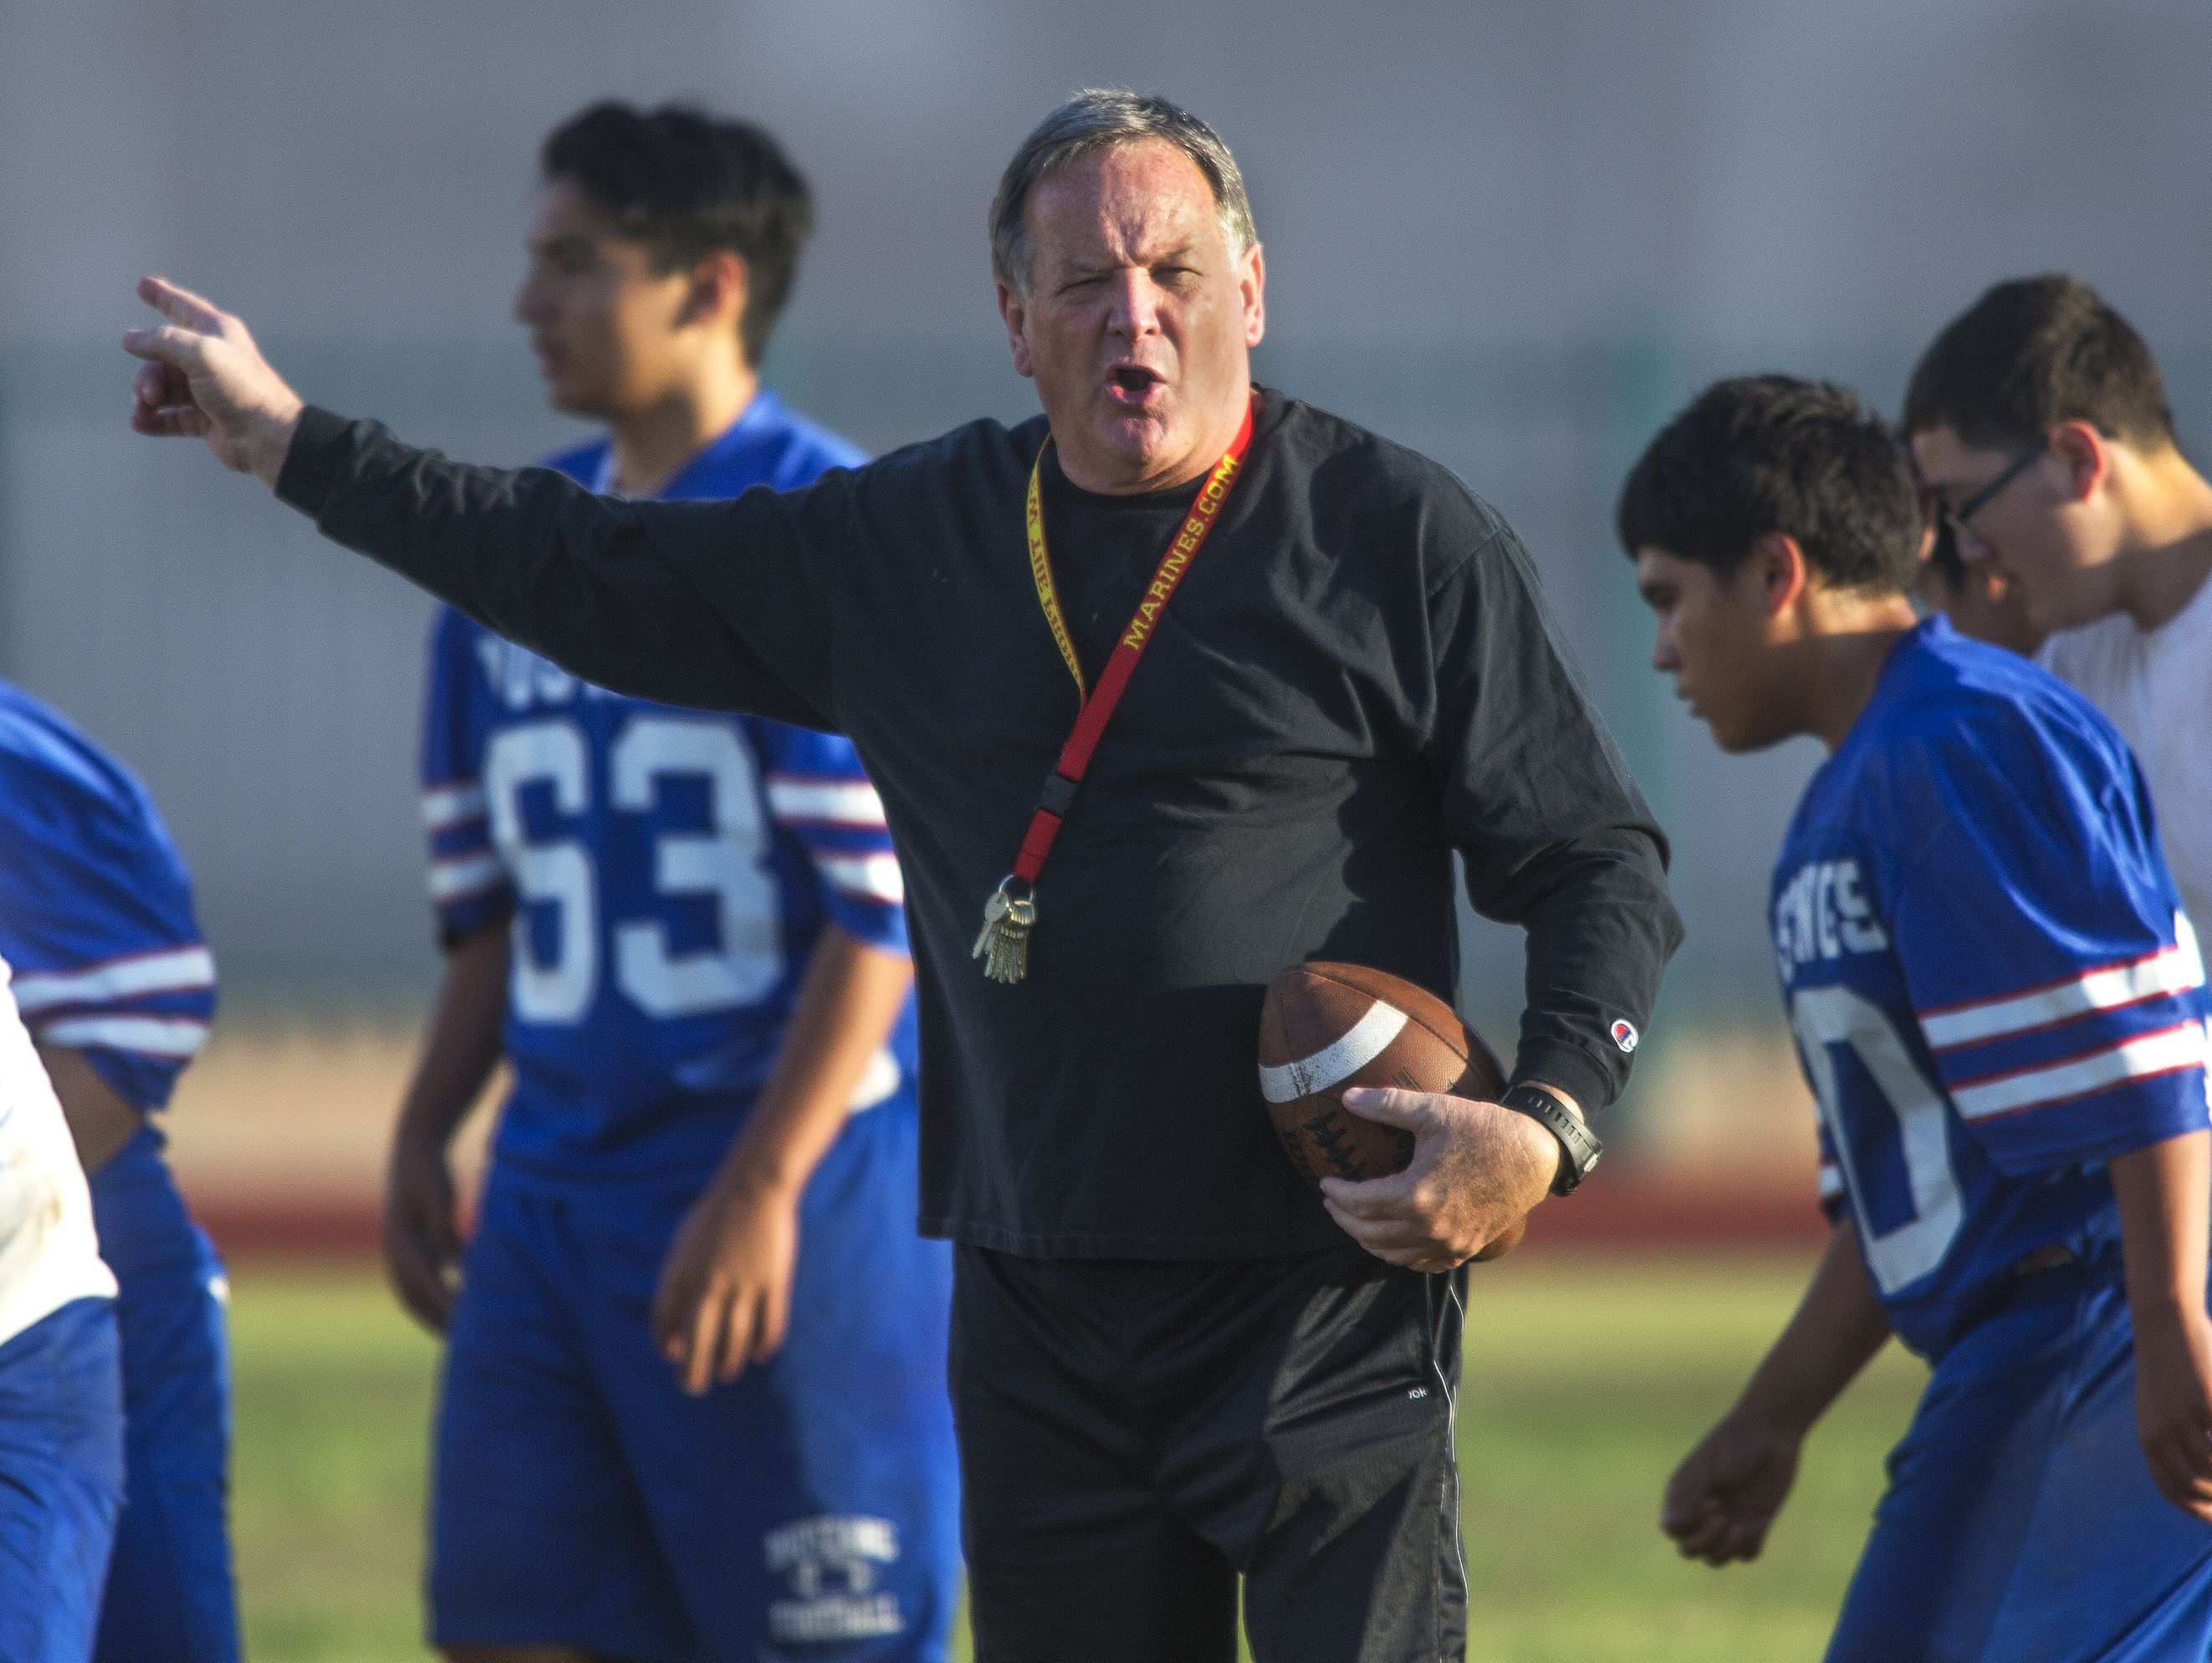 """Phoenix North High football coach Bernie Busken served three one-day suspensions without pay for a Sept. 29 incident in which he """"endangered a student's well-being and safety,"""" according to a three-page report in Busken's personnel file."""